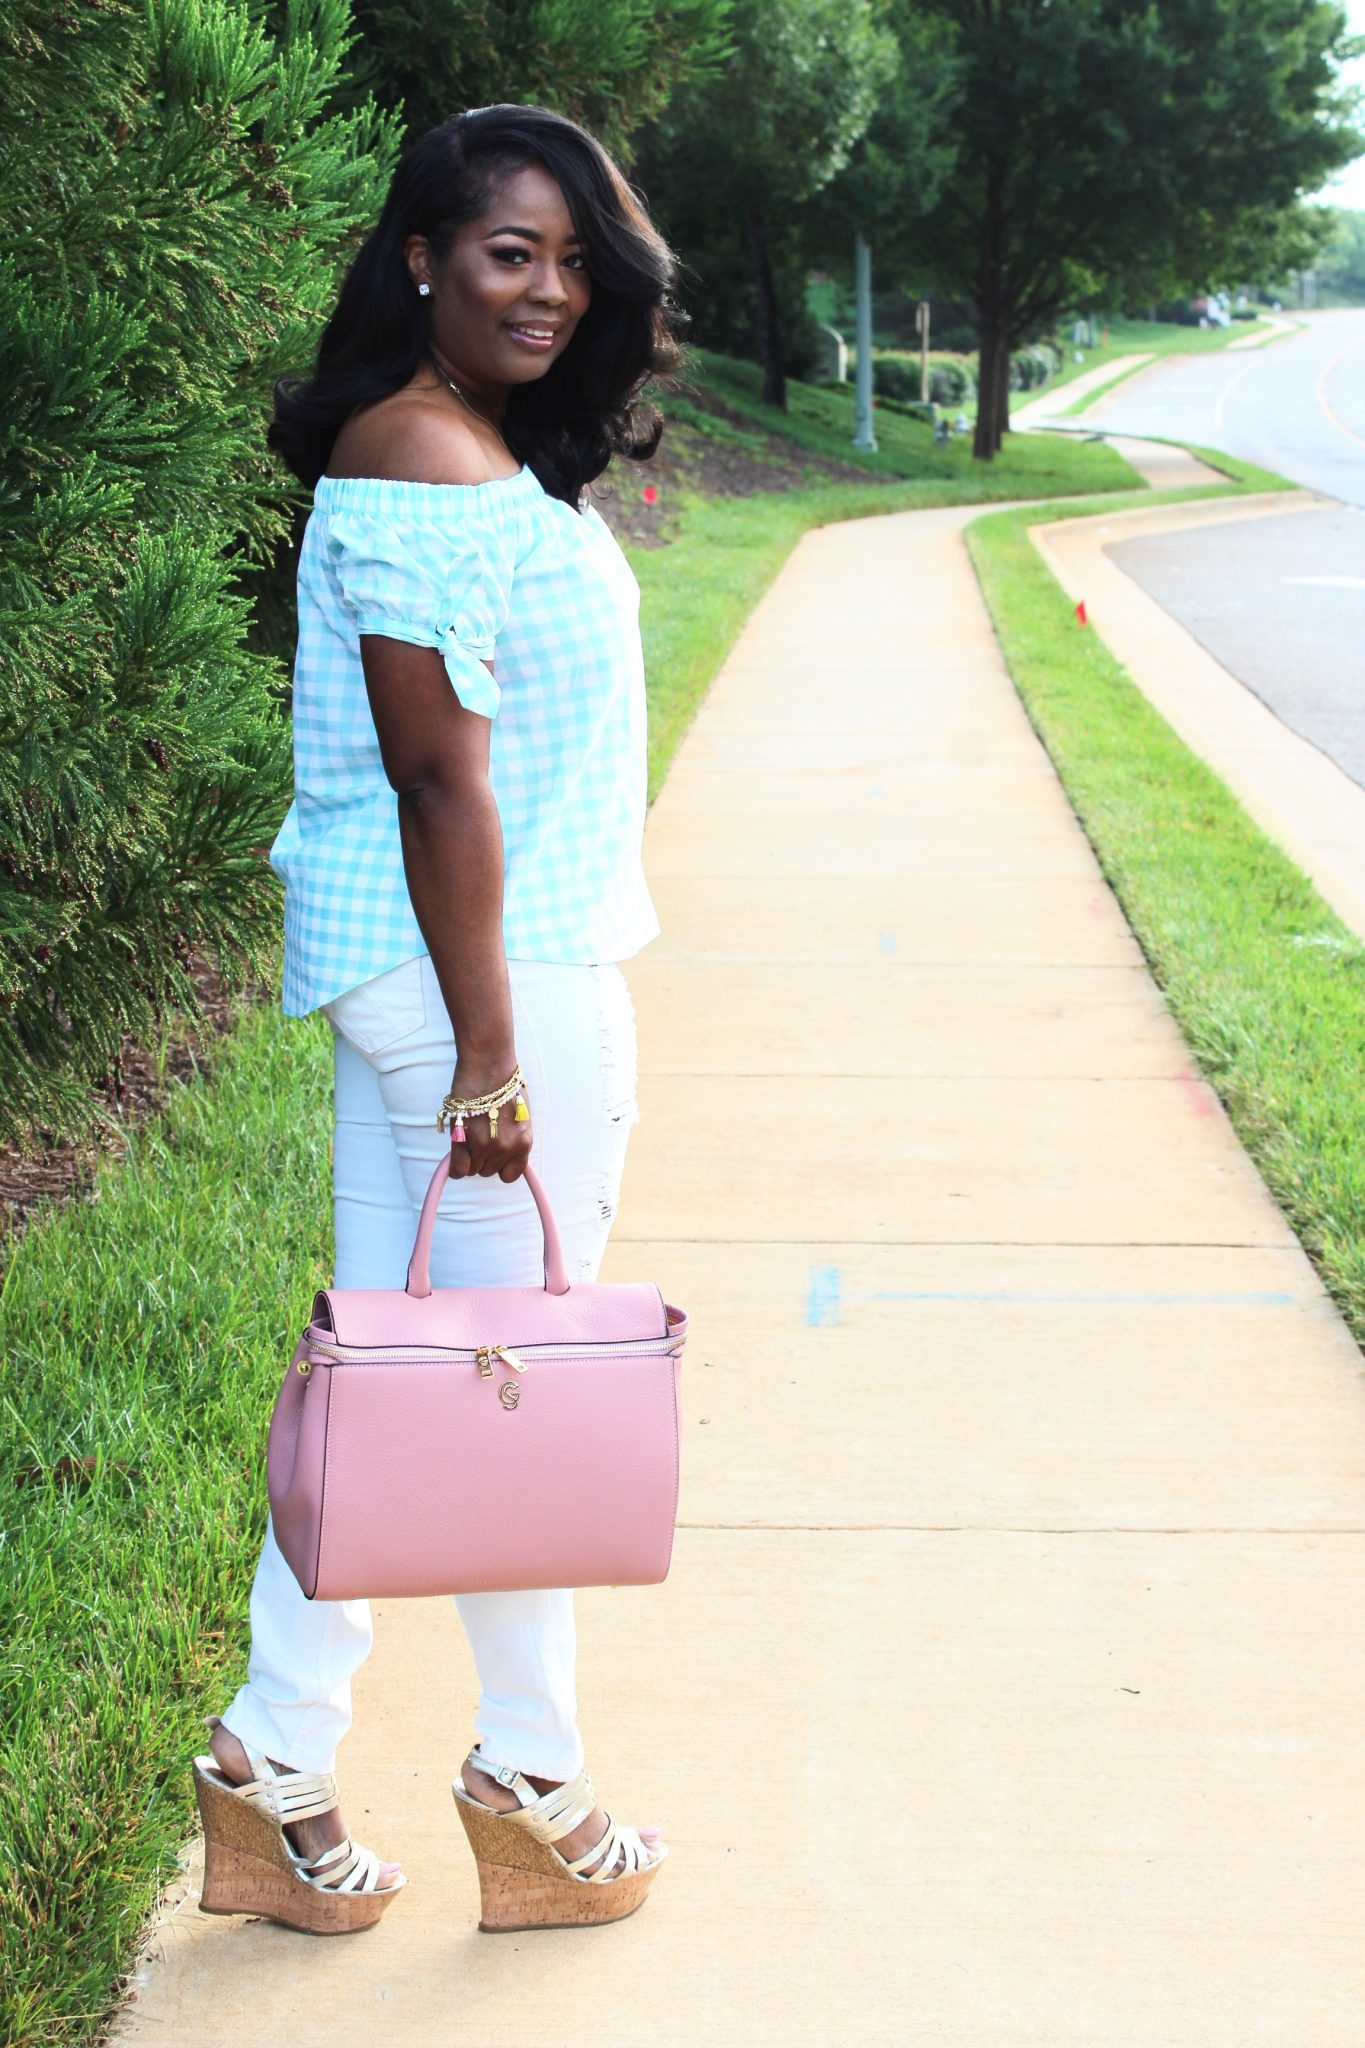 My Style: Gingham Print Off-The-Shoulder Blouse